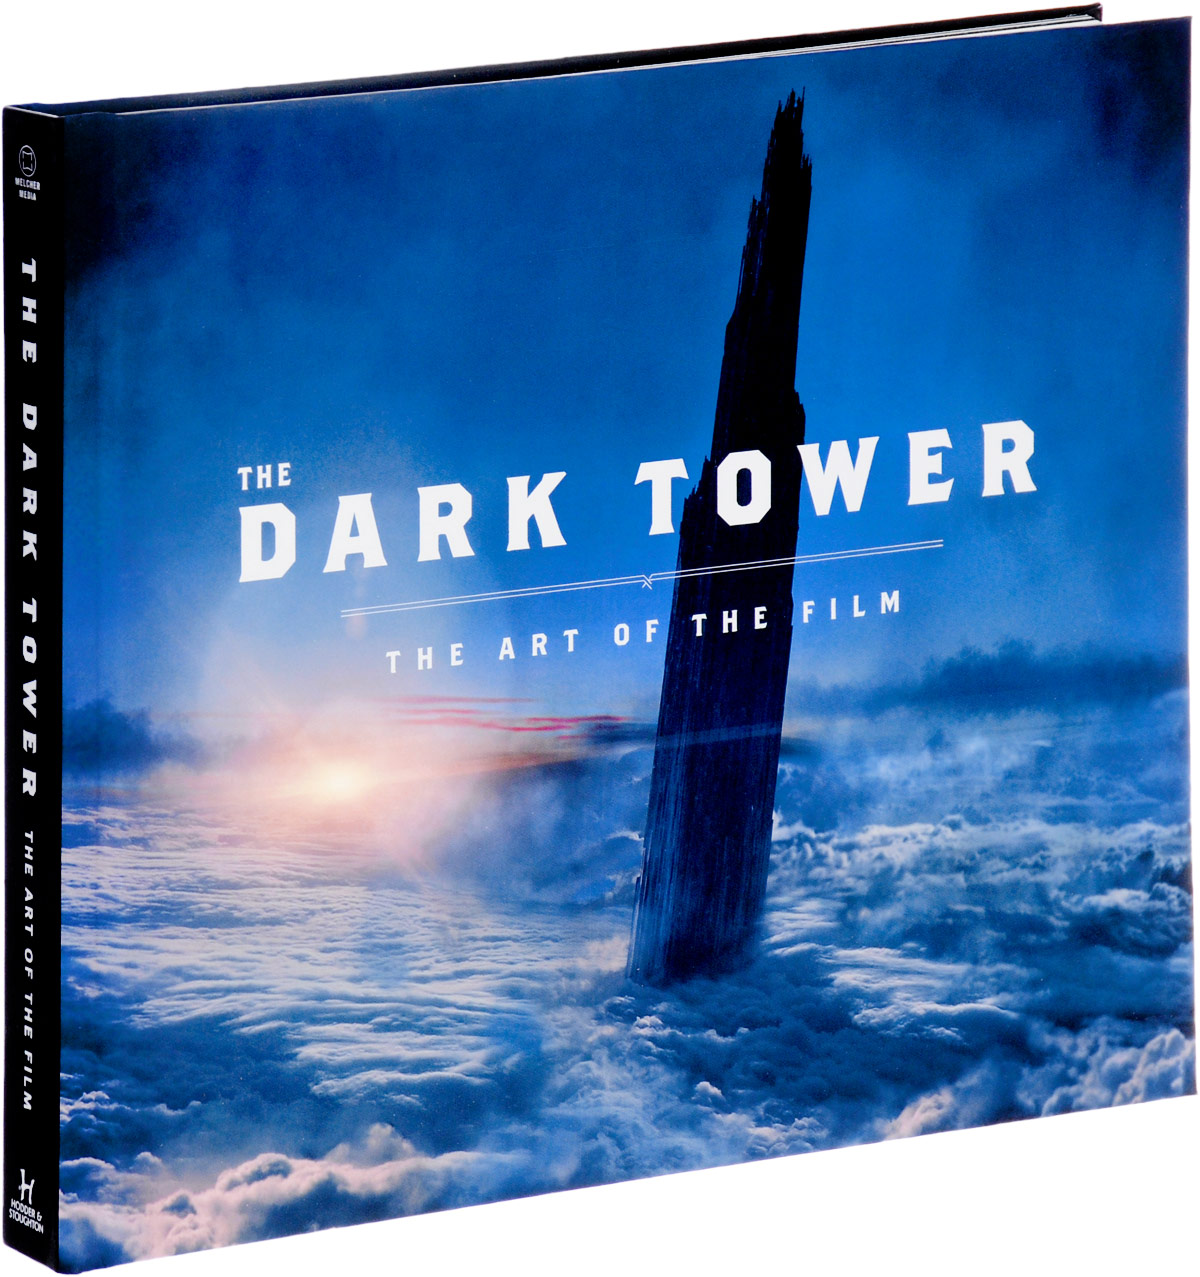 The Dark Tower: The Art of the Film dark tower